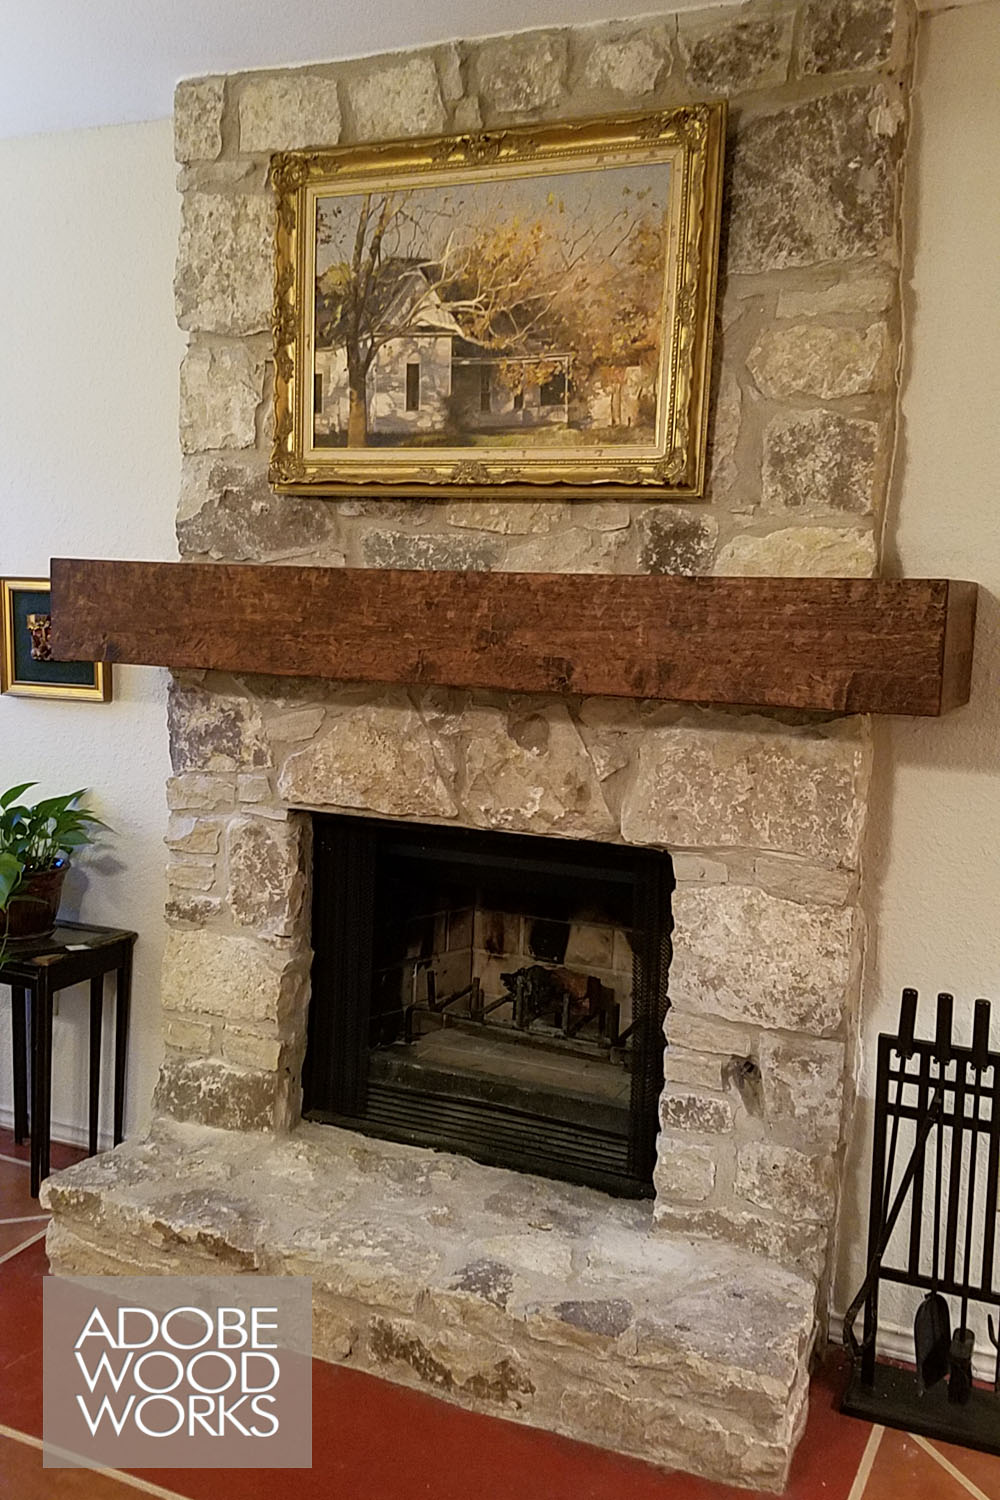 This is the first custom mantel I made!